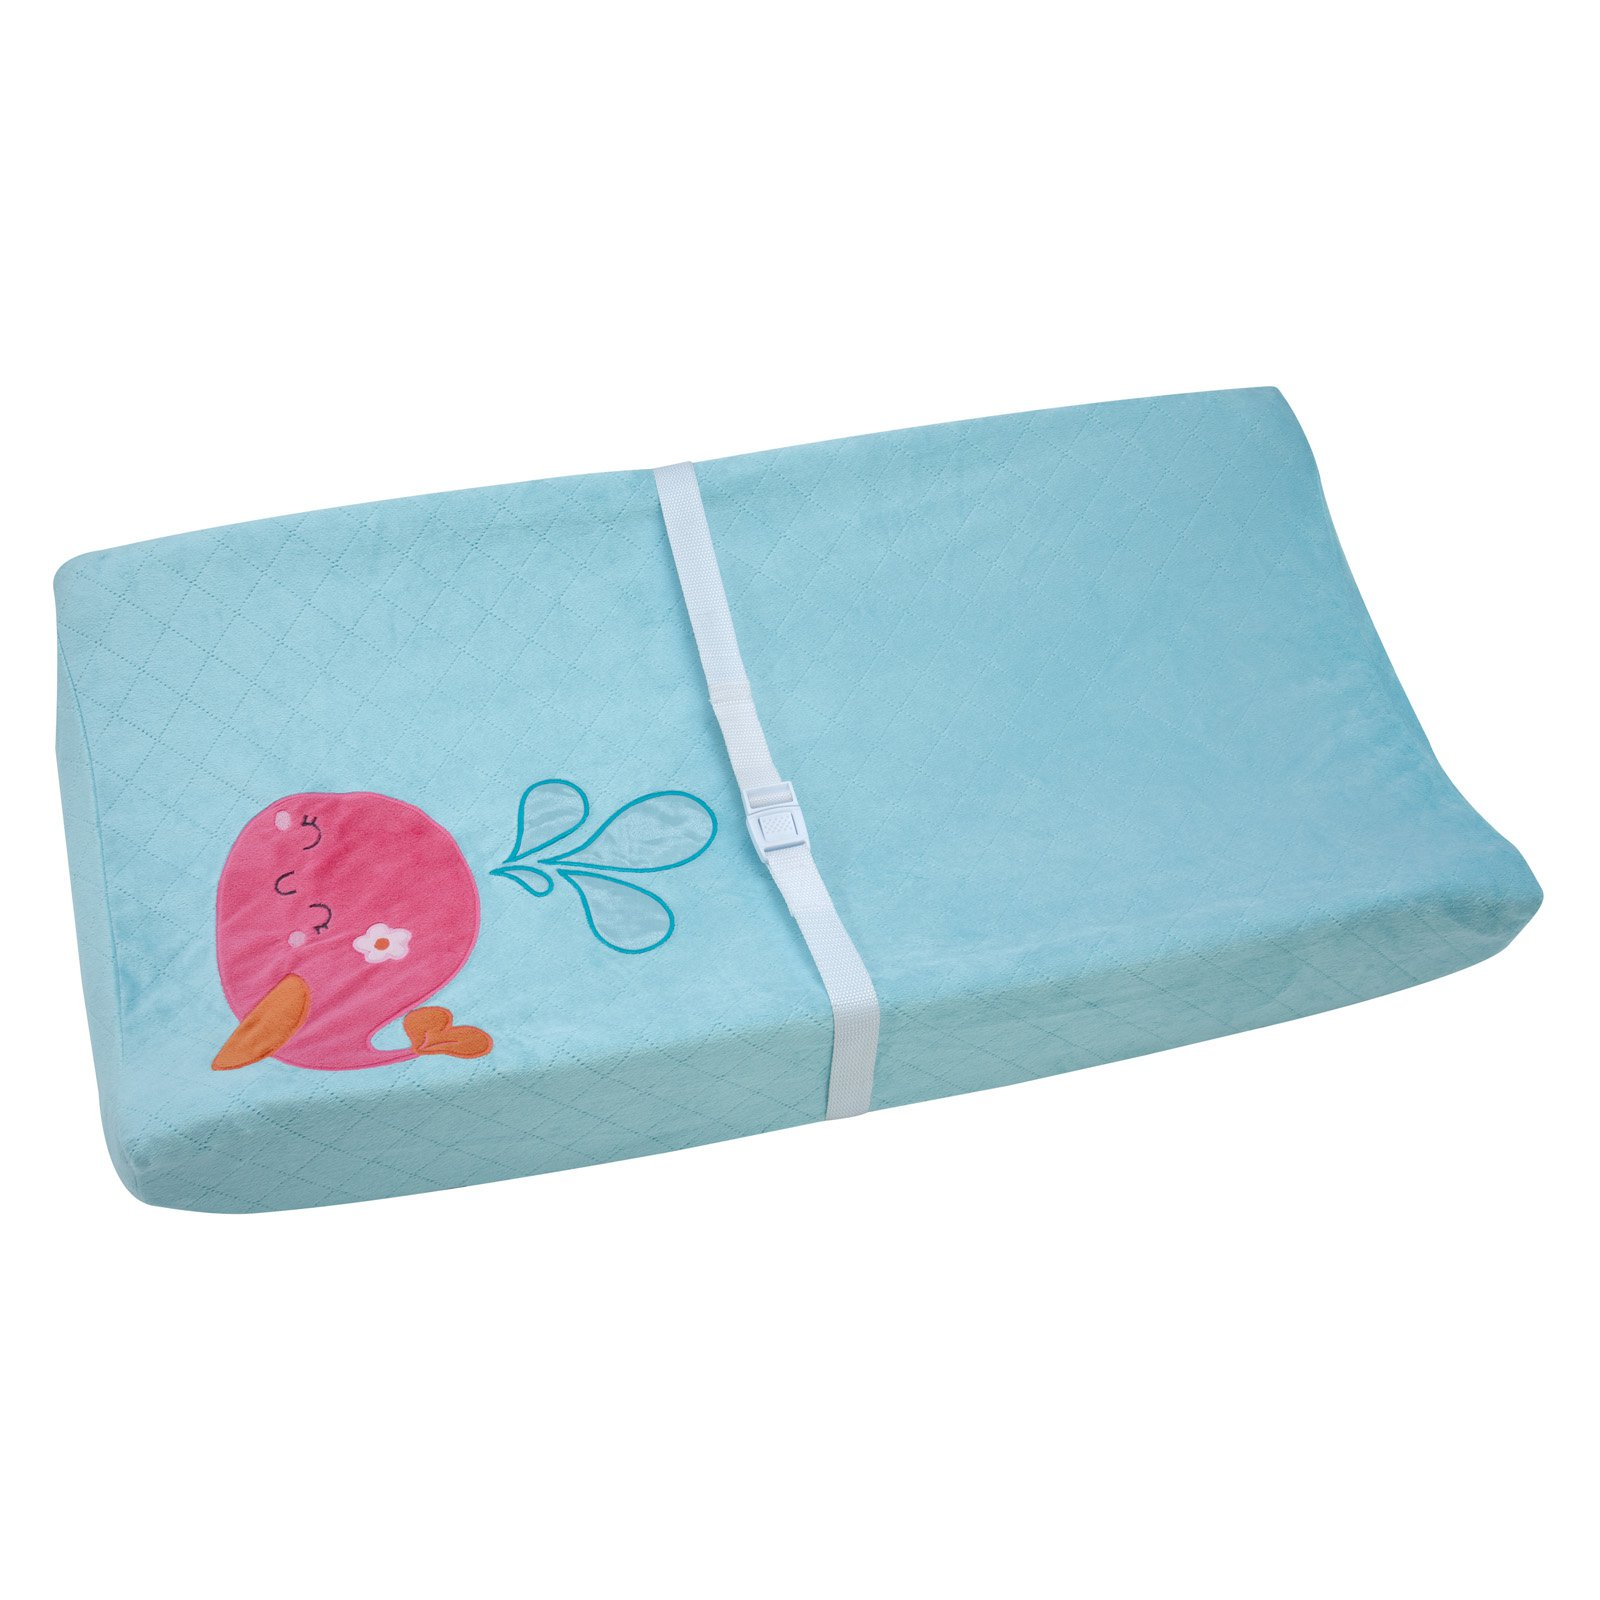 Carter's Sea Contoured Changing Pad Covers by Carter%27s